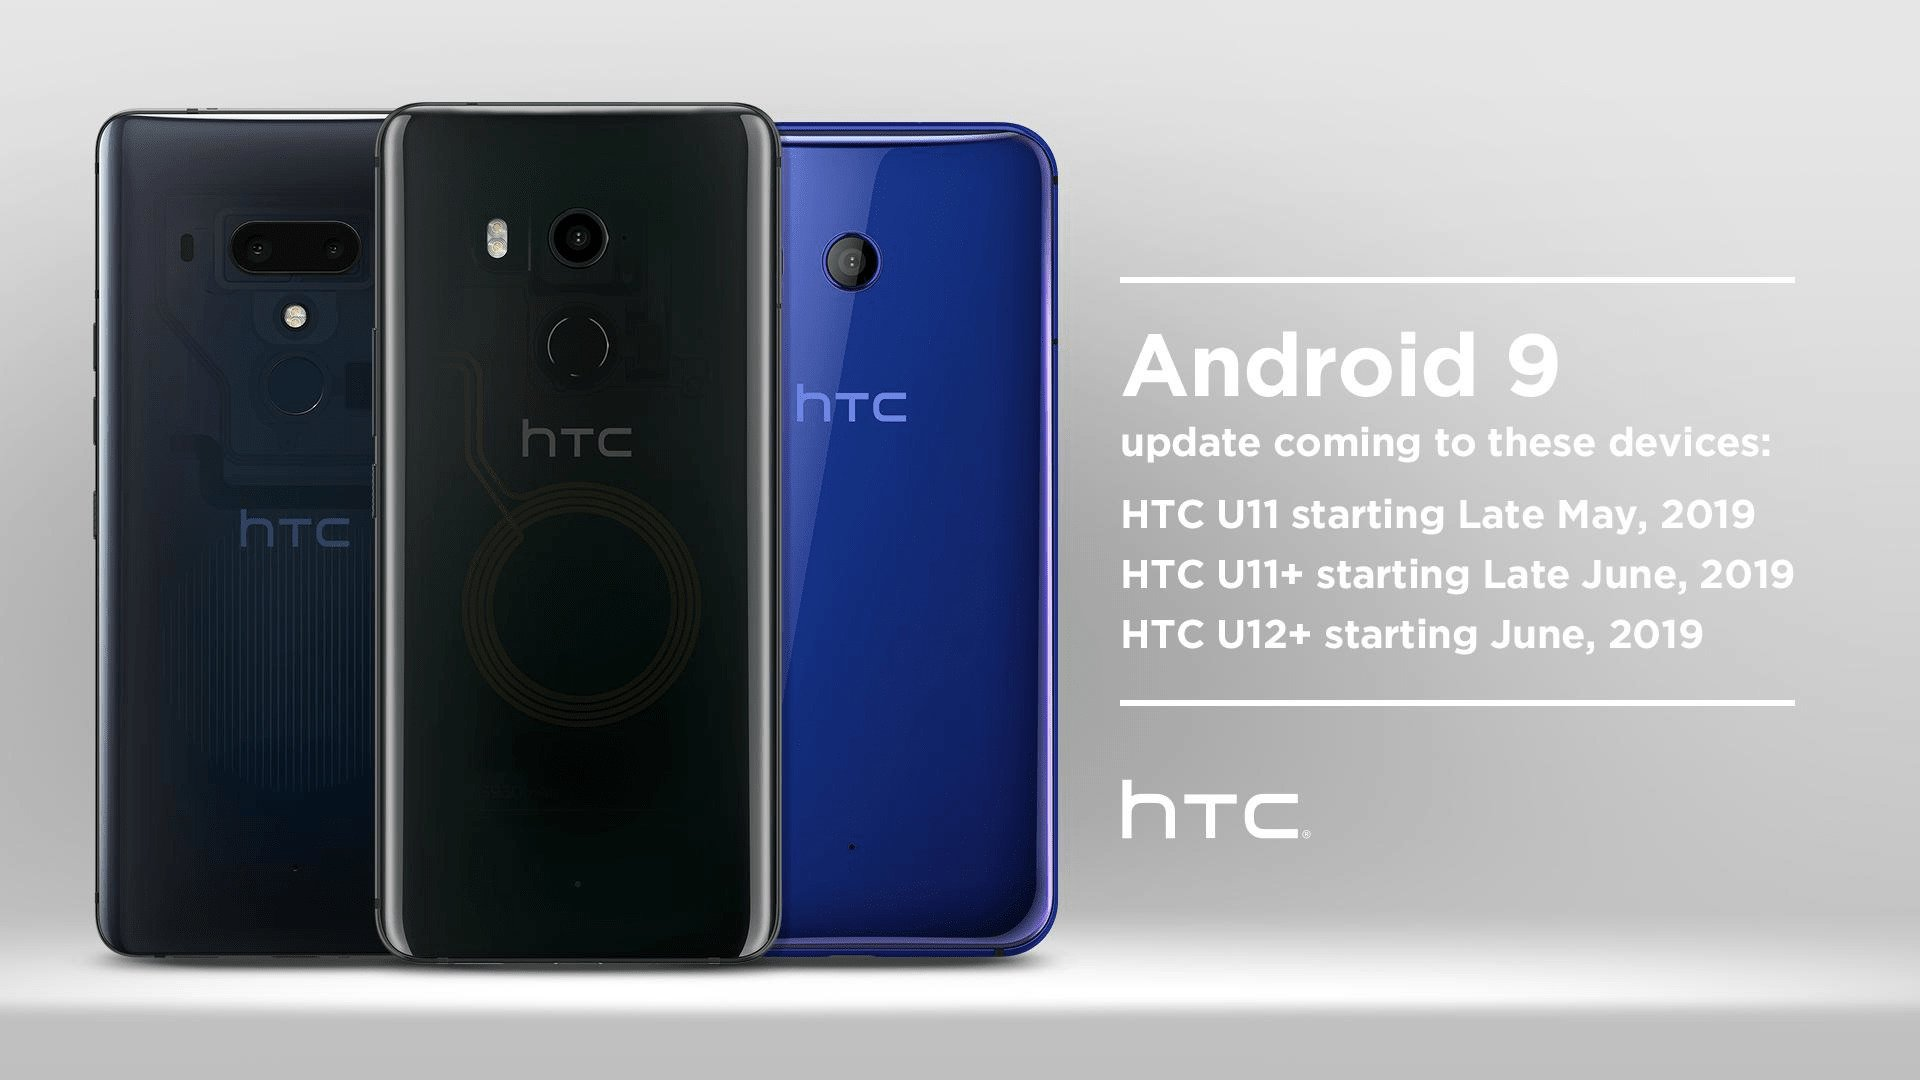 Android 9 Pie update coming for HTC U11, U11+, and U12+